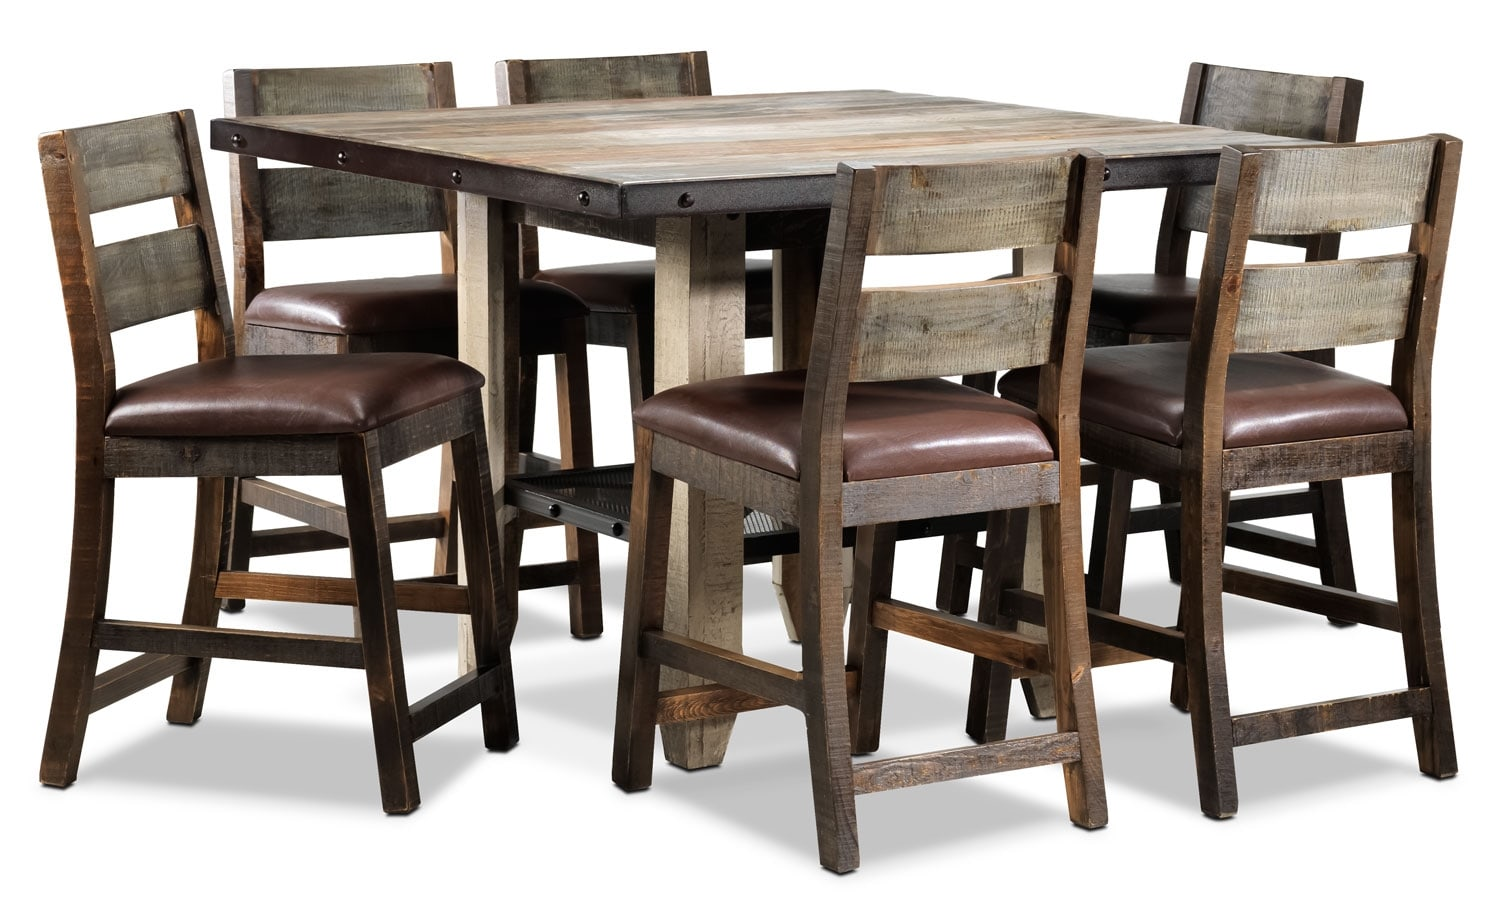 Allison Pine 7-Piece Pub-Height Dining Room Set - Antiqued Pine